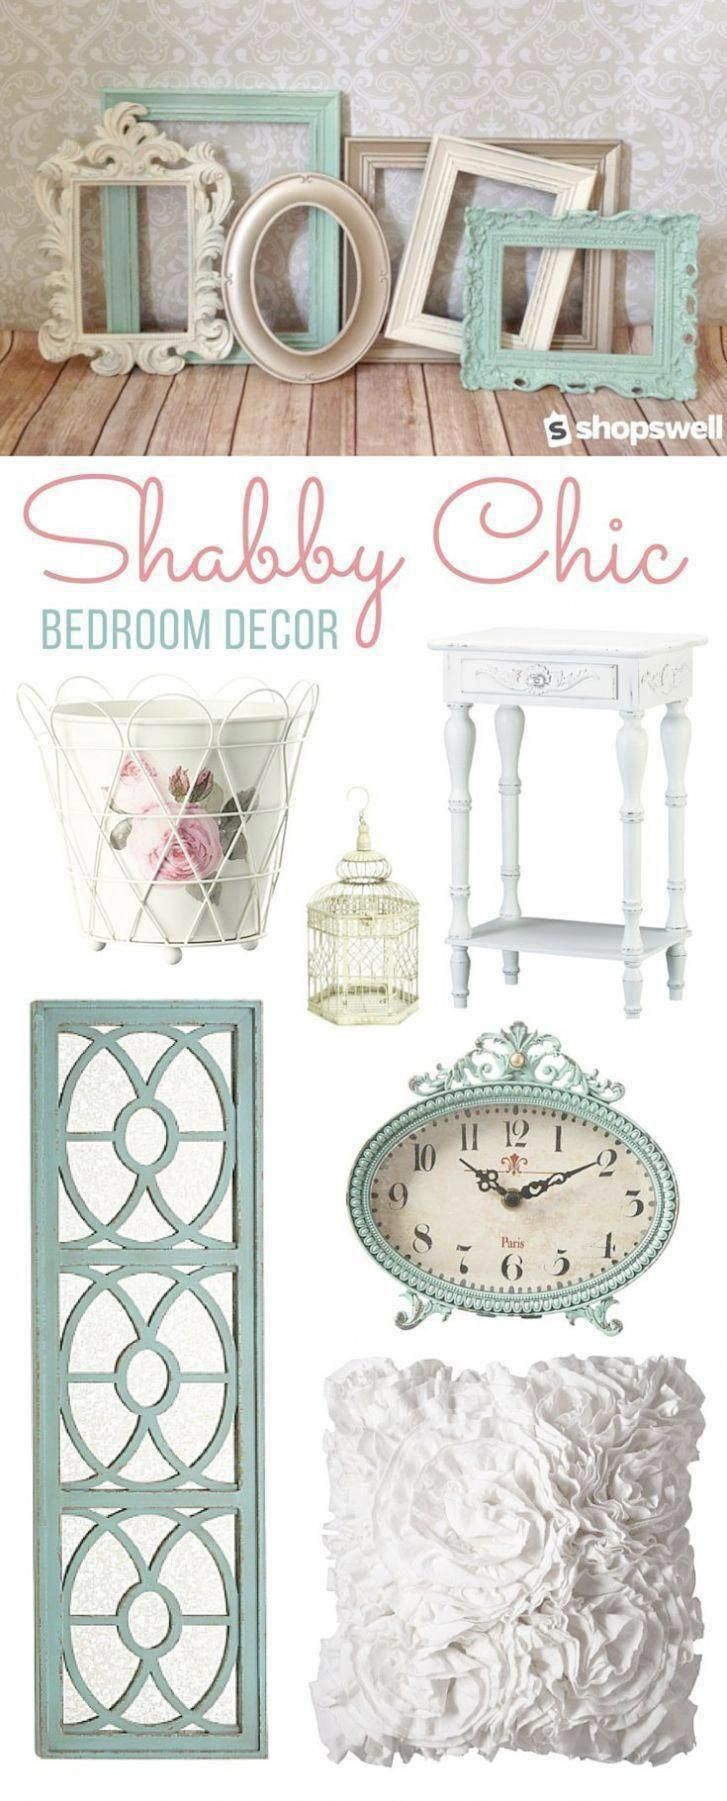 Home Decorating Shabby Chic Cottage Style Chic Home Decor On A Budget #Shabbychi… – Stephanie Arrington